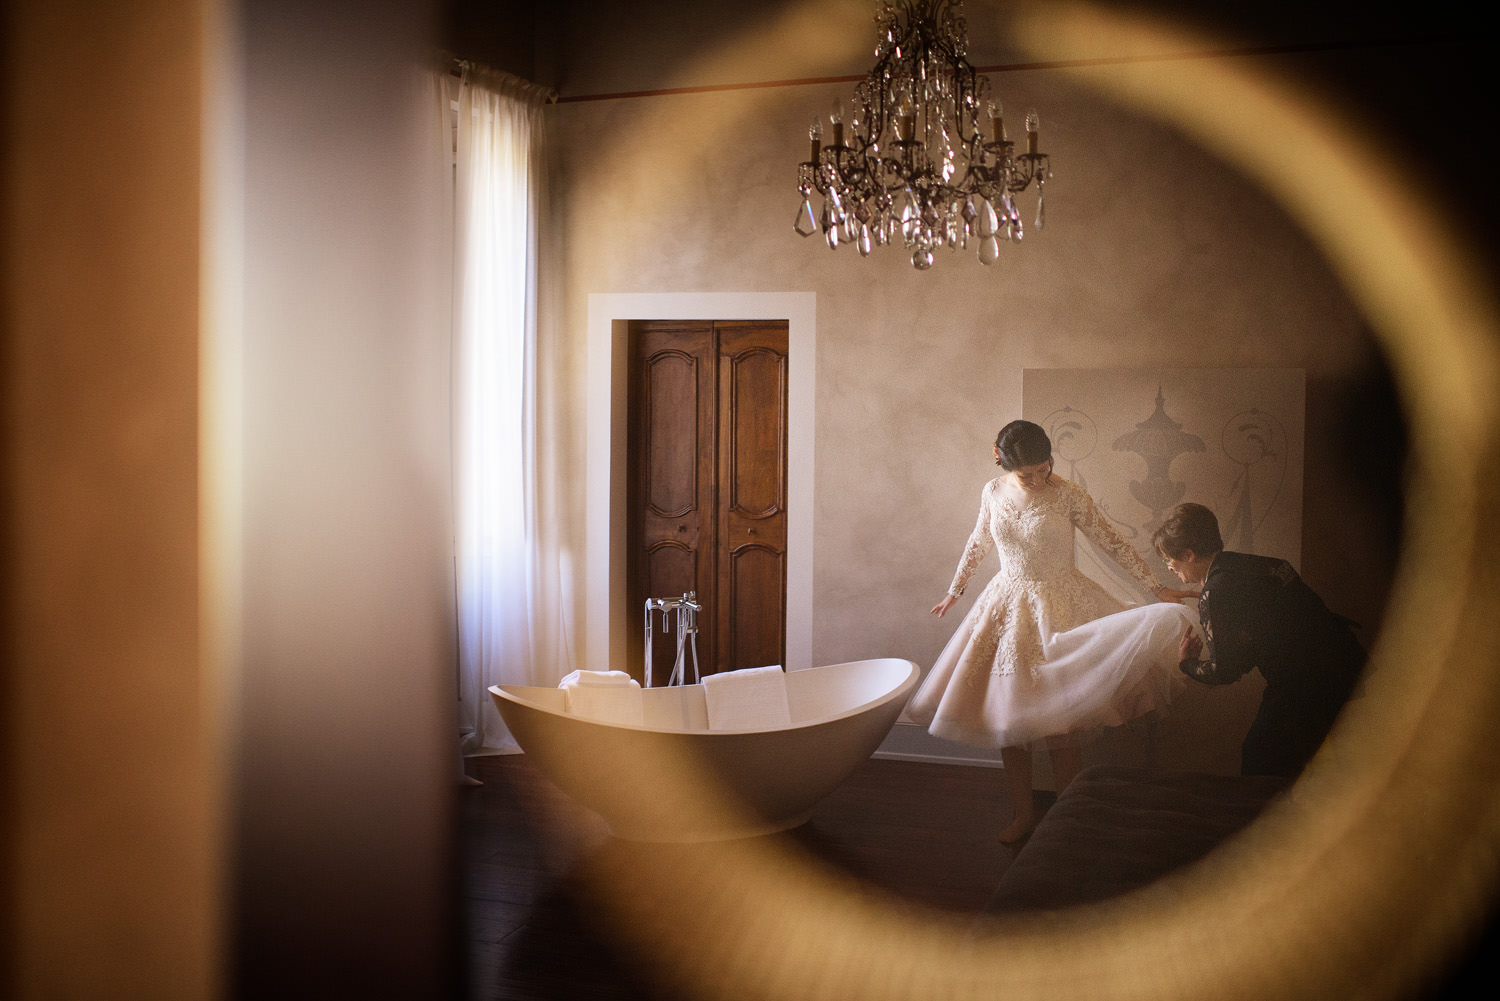 wedding reflection. Italian wedding photographer